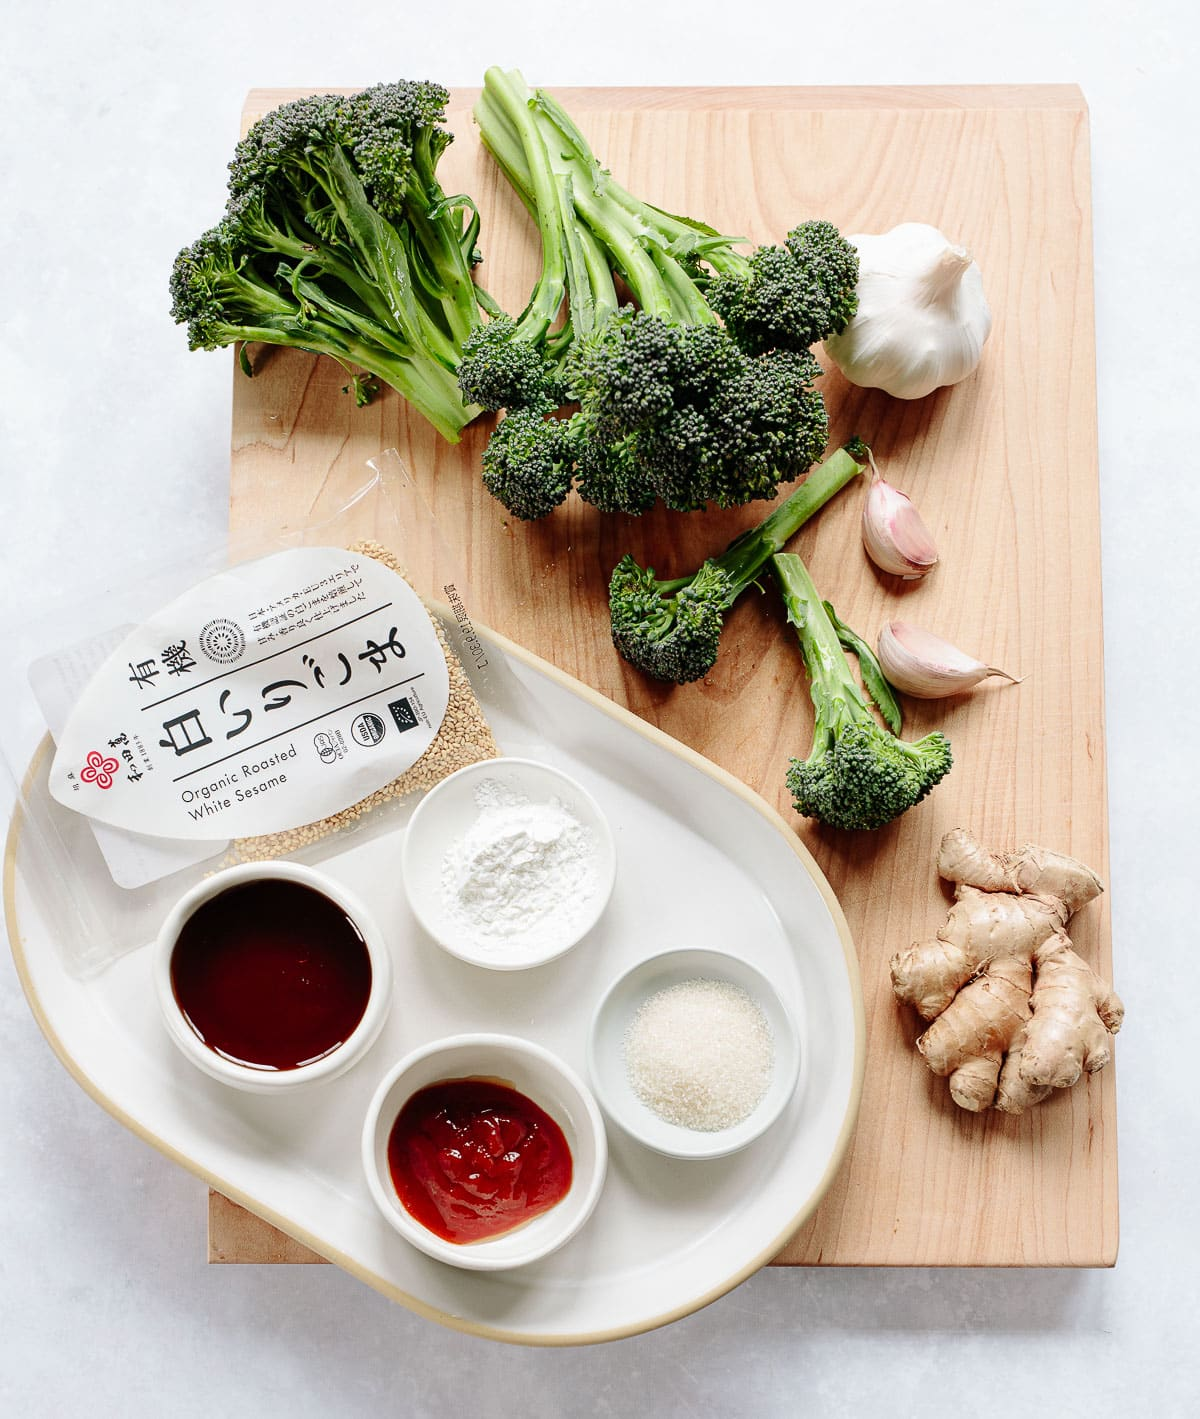 Ingredients for Chinese-style chicken and broccoli on a plate and maple cutting board: Fresh broccoli, garlic, ginger, sesame, sugar, soy sauce and cornstarch.